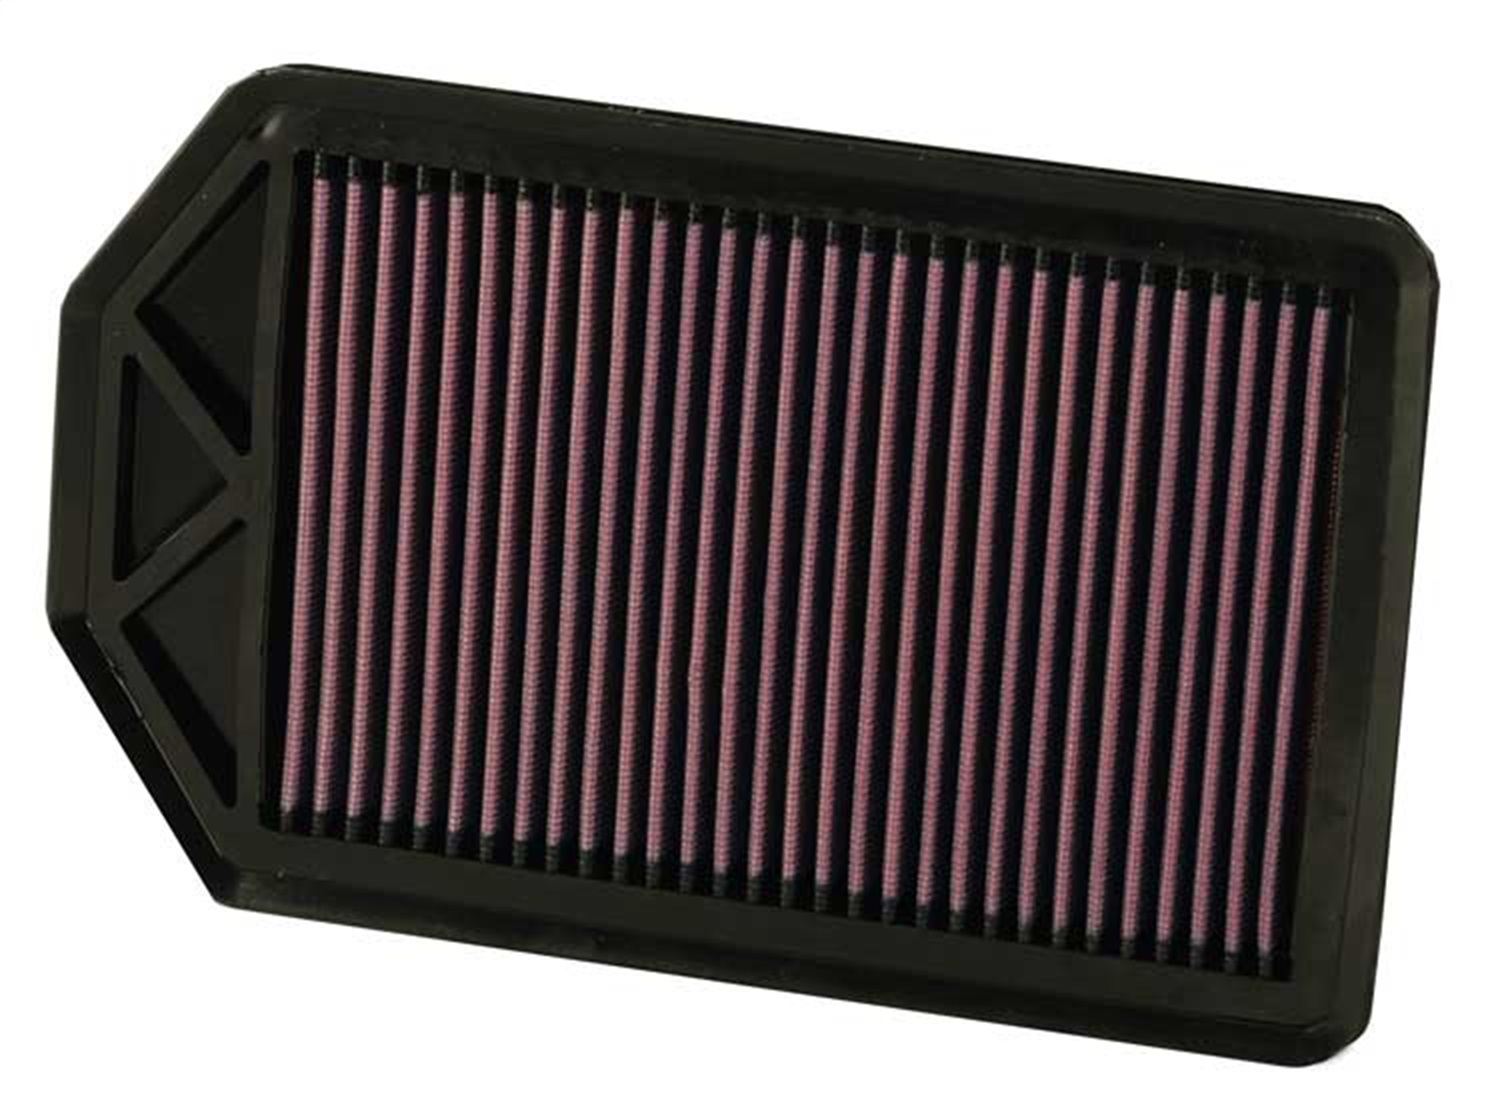 K&N Filters 33-2377 Air Filter Fits 07-09 CR-V 33-2377